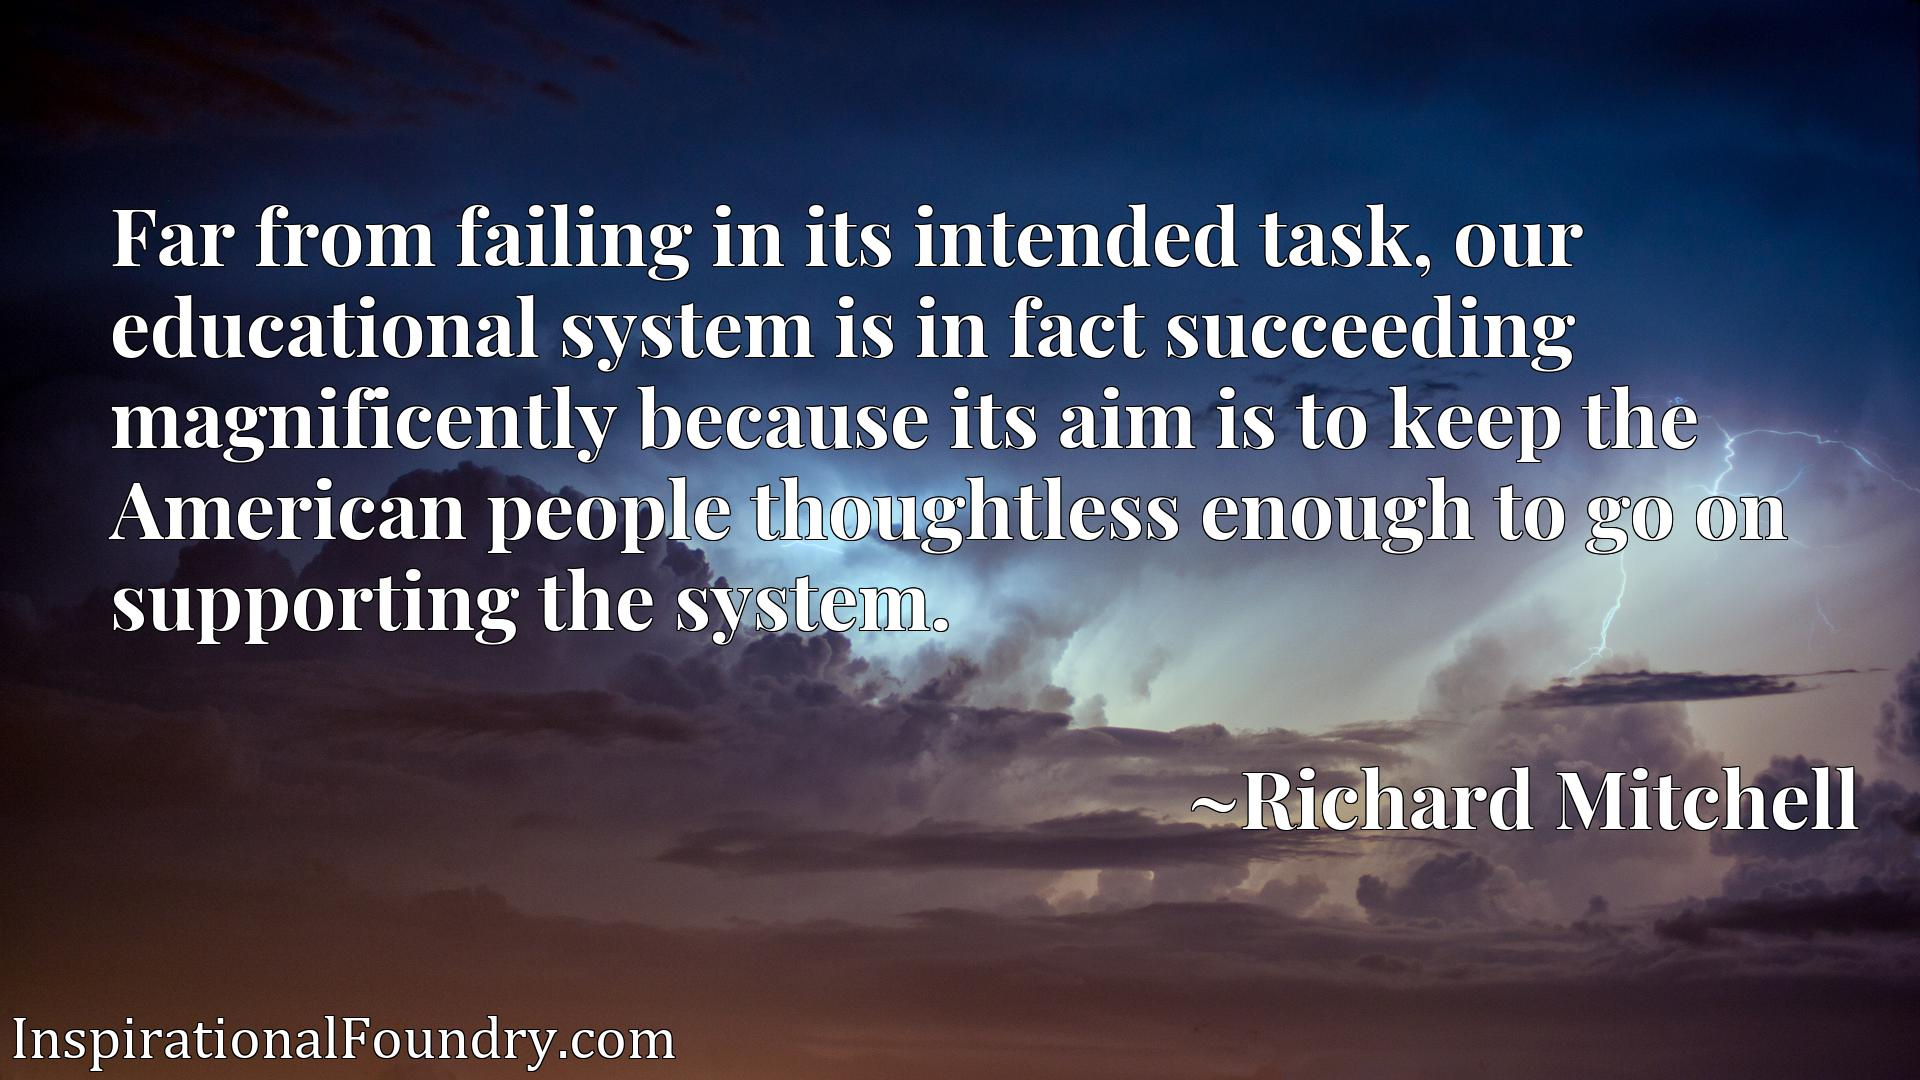 Far from failing in its intended task, our educational system is in fact succeeding magnificently because its aim is to keep the American people thoughtless enough to go on supporting the system.